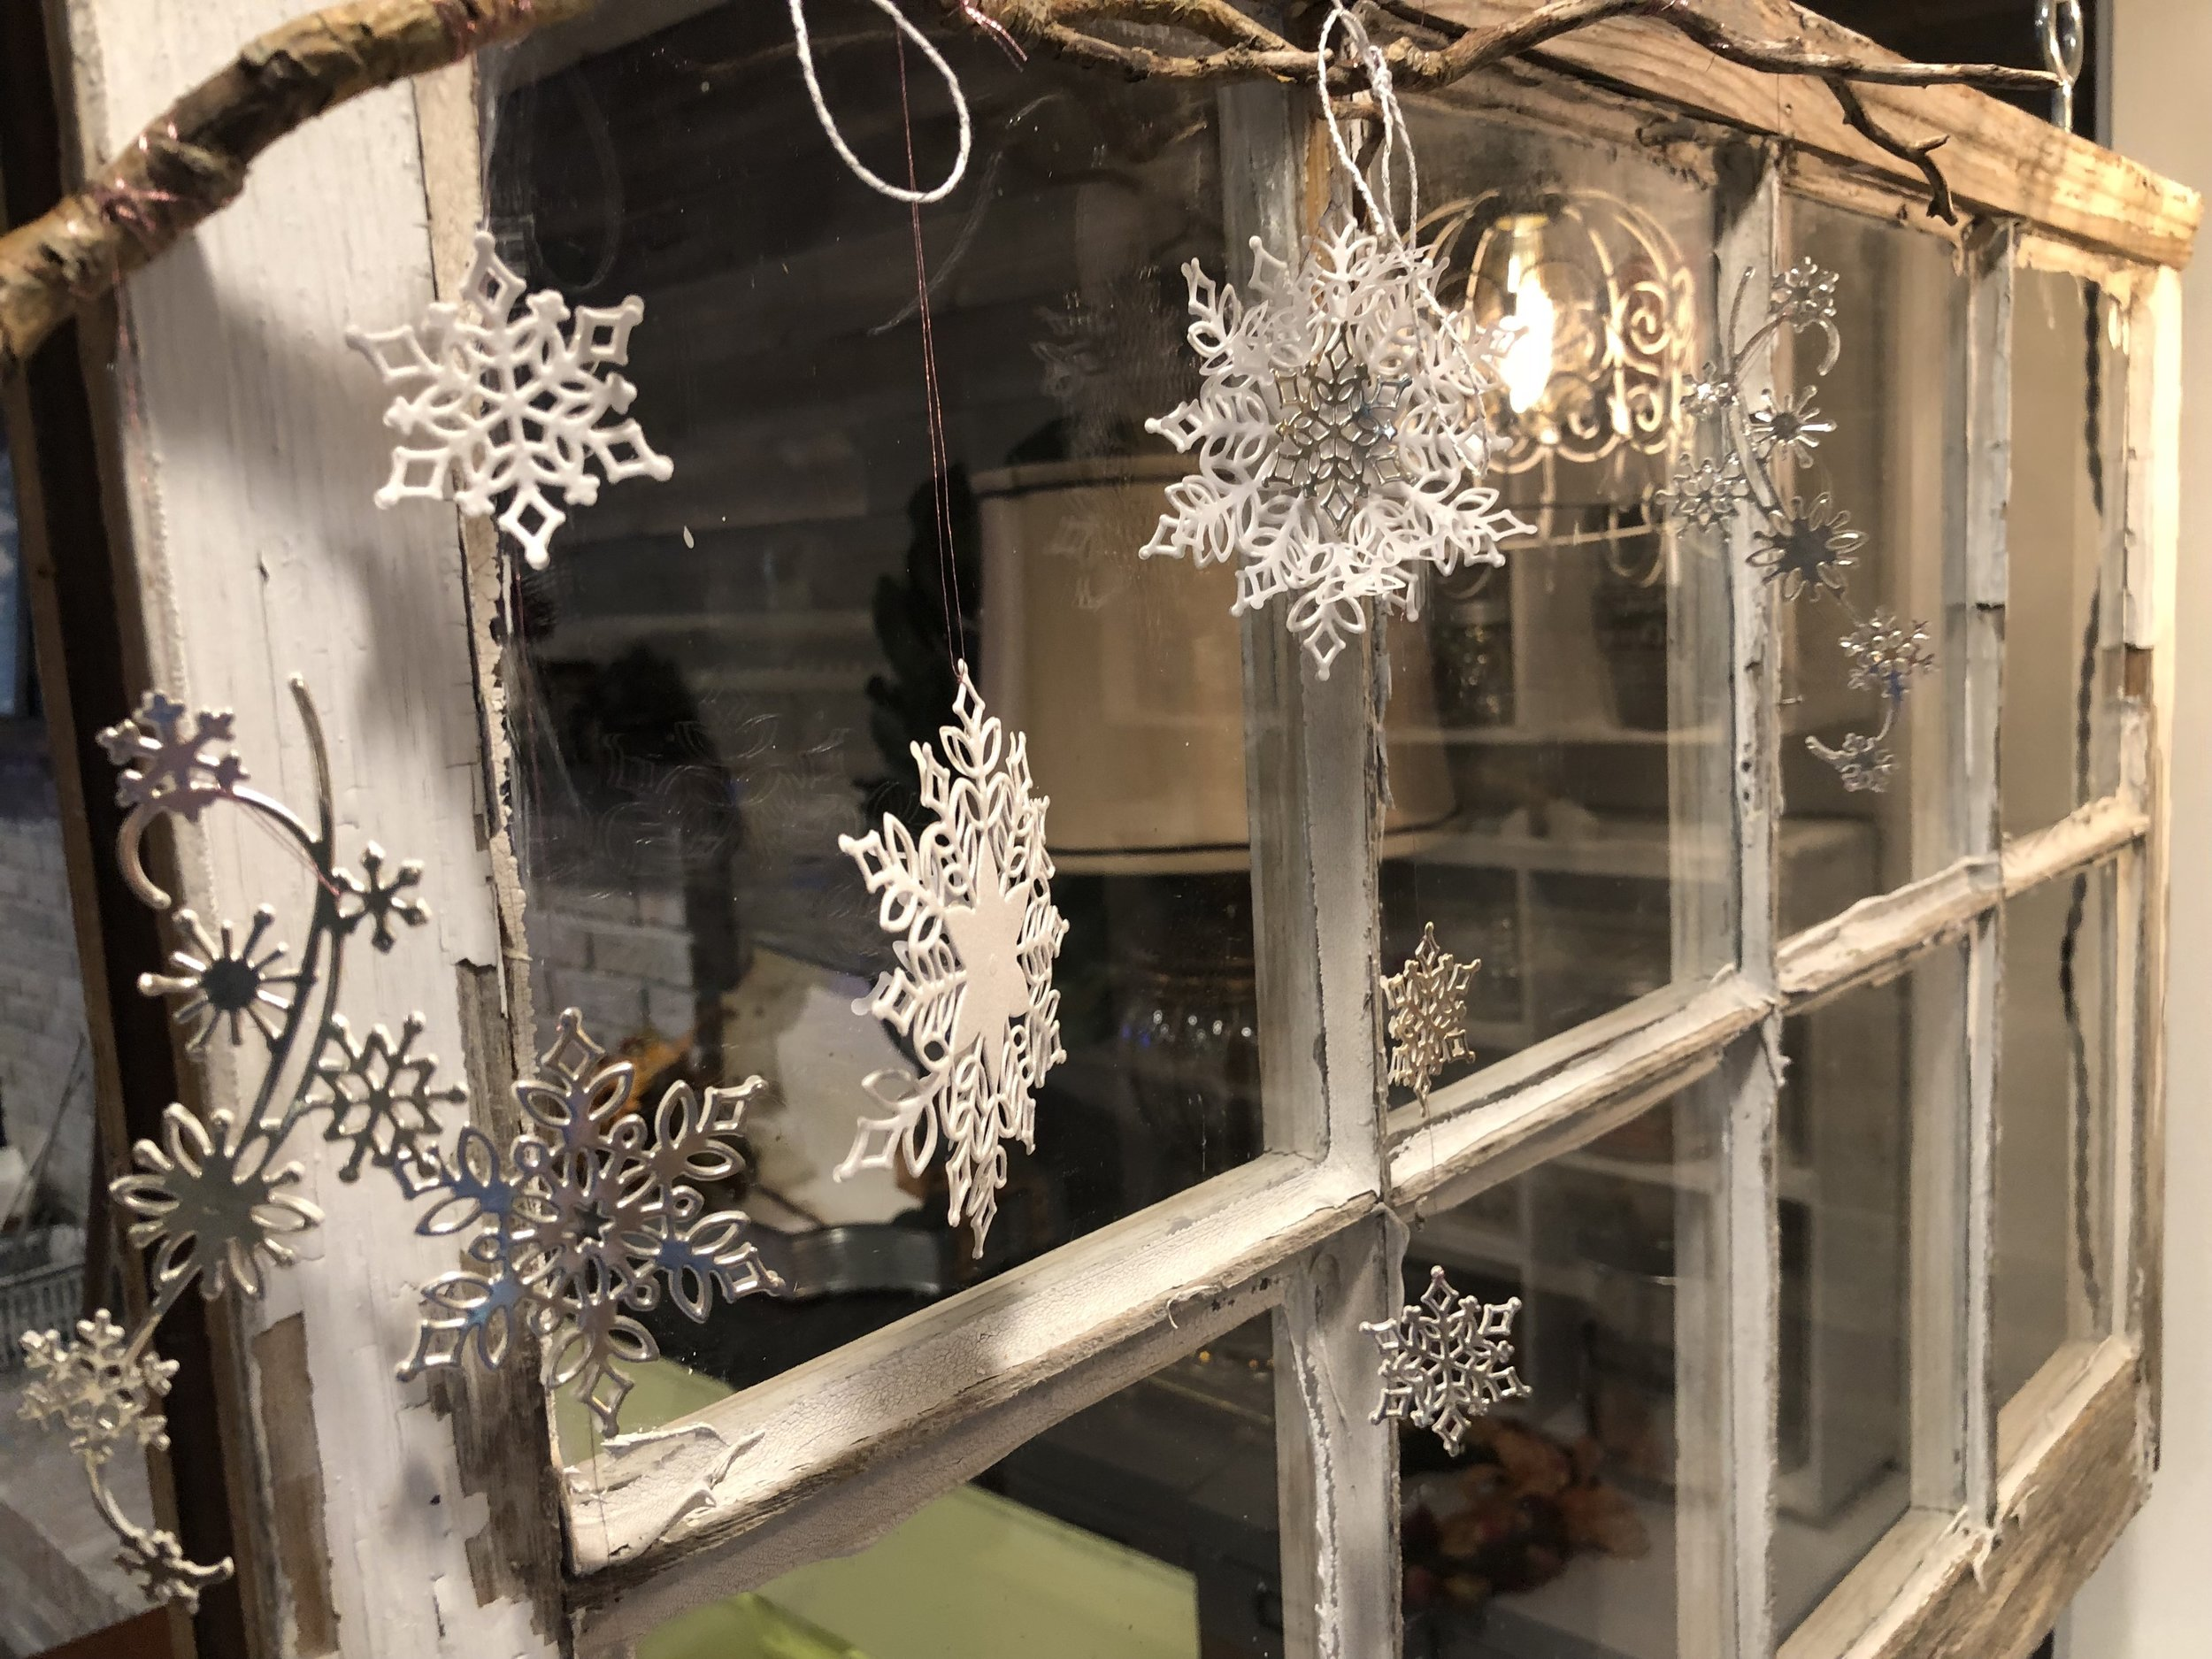 A sweet snowflake mobile. So simple, yet strikingly beautiful.